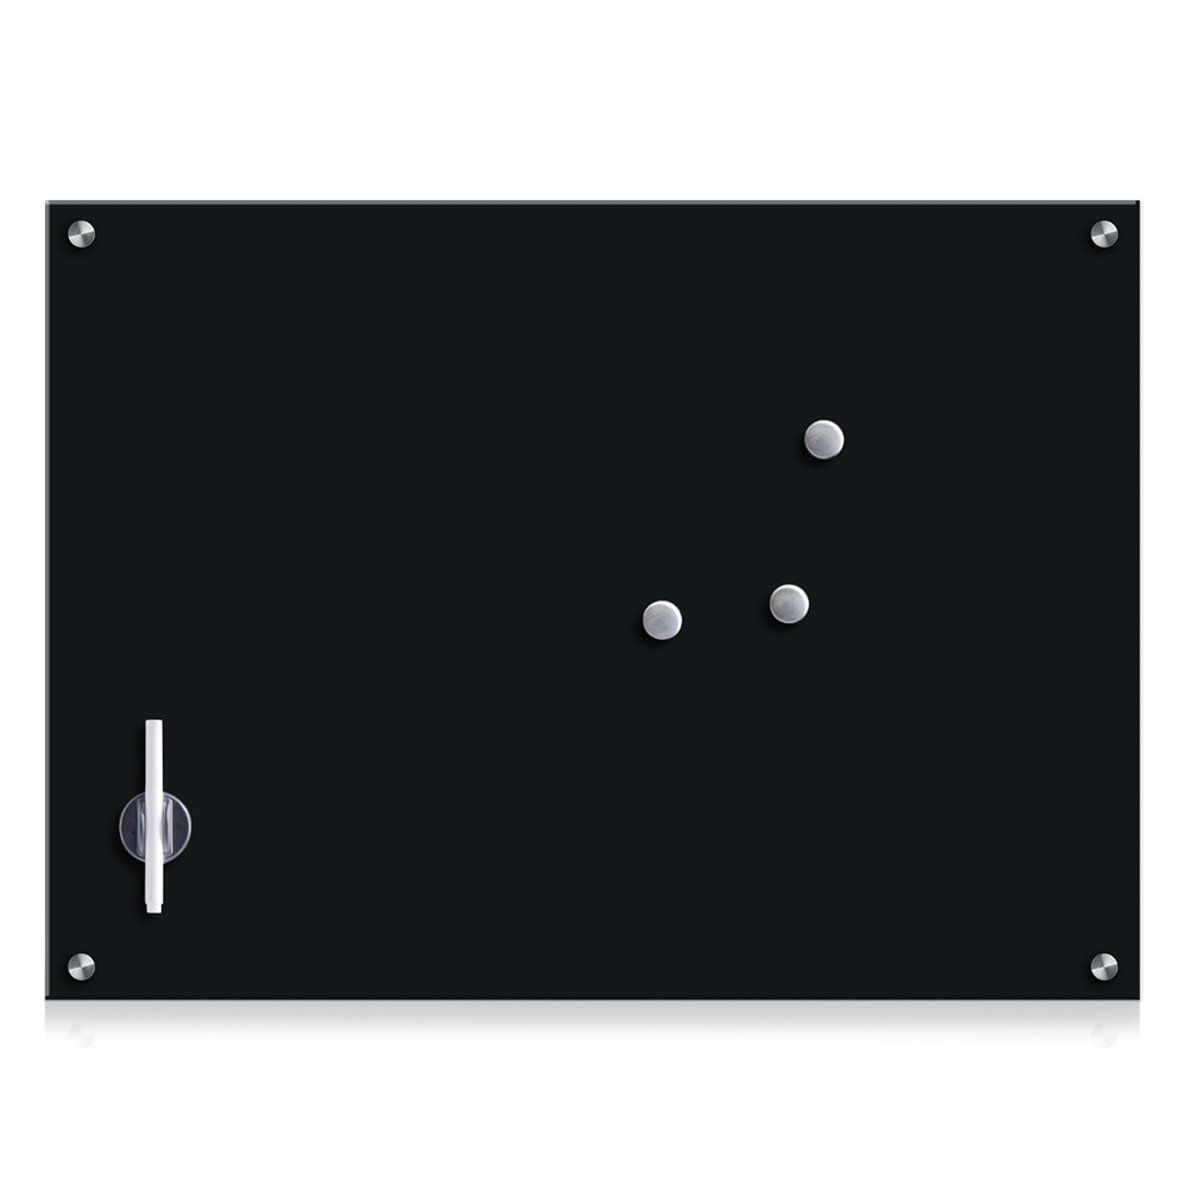 Zeller Glass Memo Board, Black by Zeller